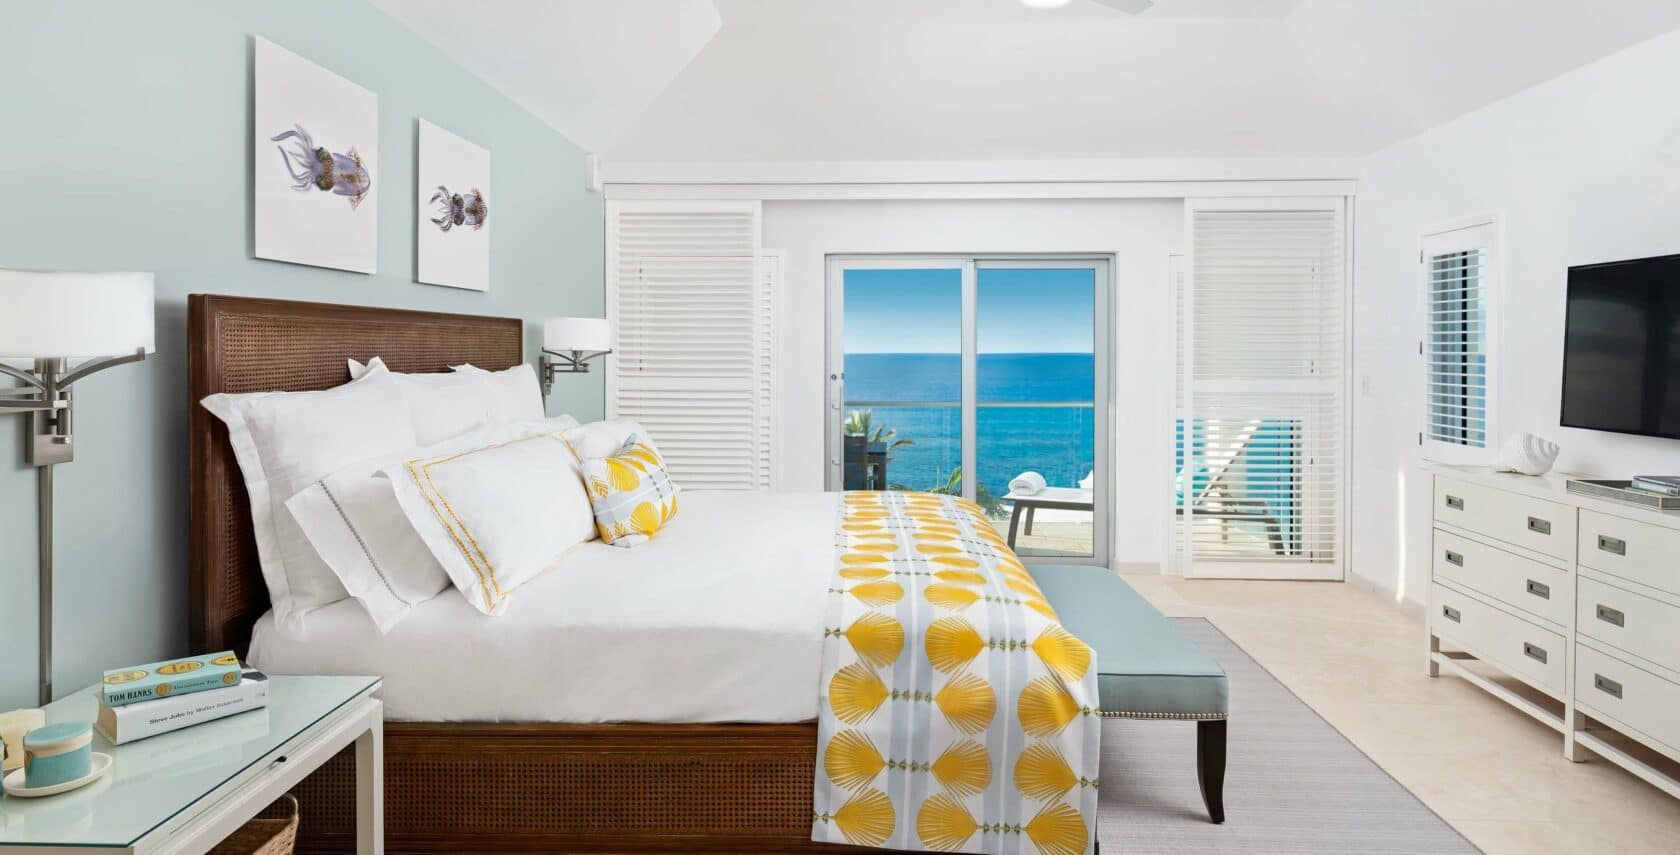 A bedroom with large glass doors showing a view of the ocean.